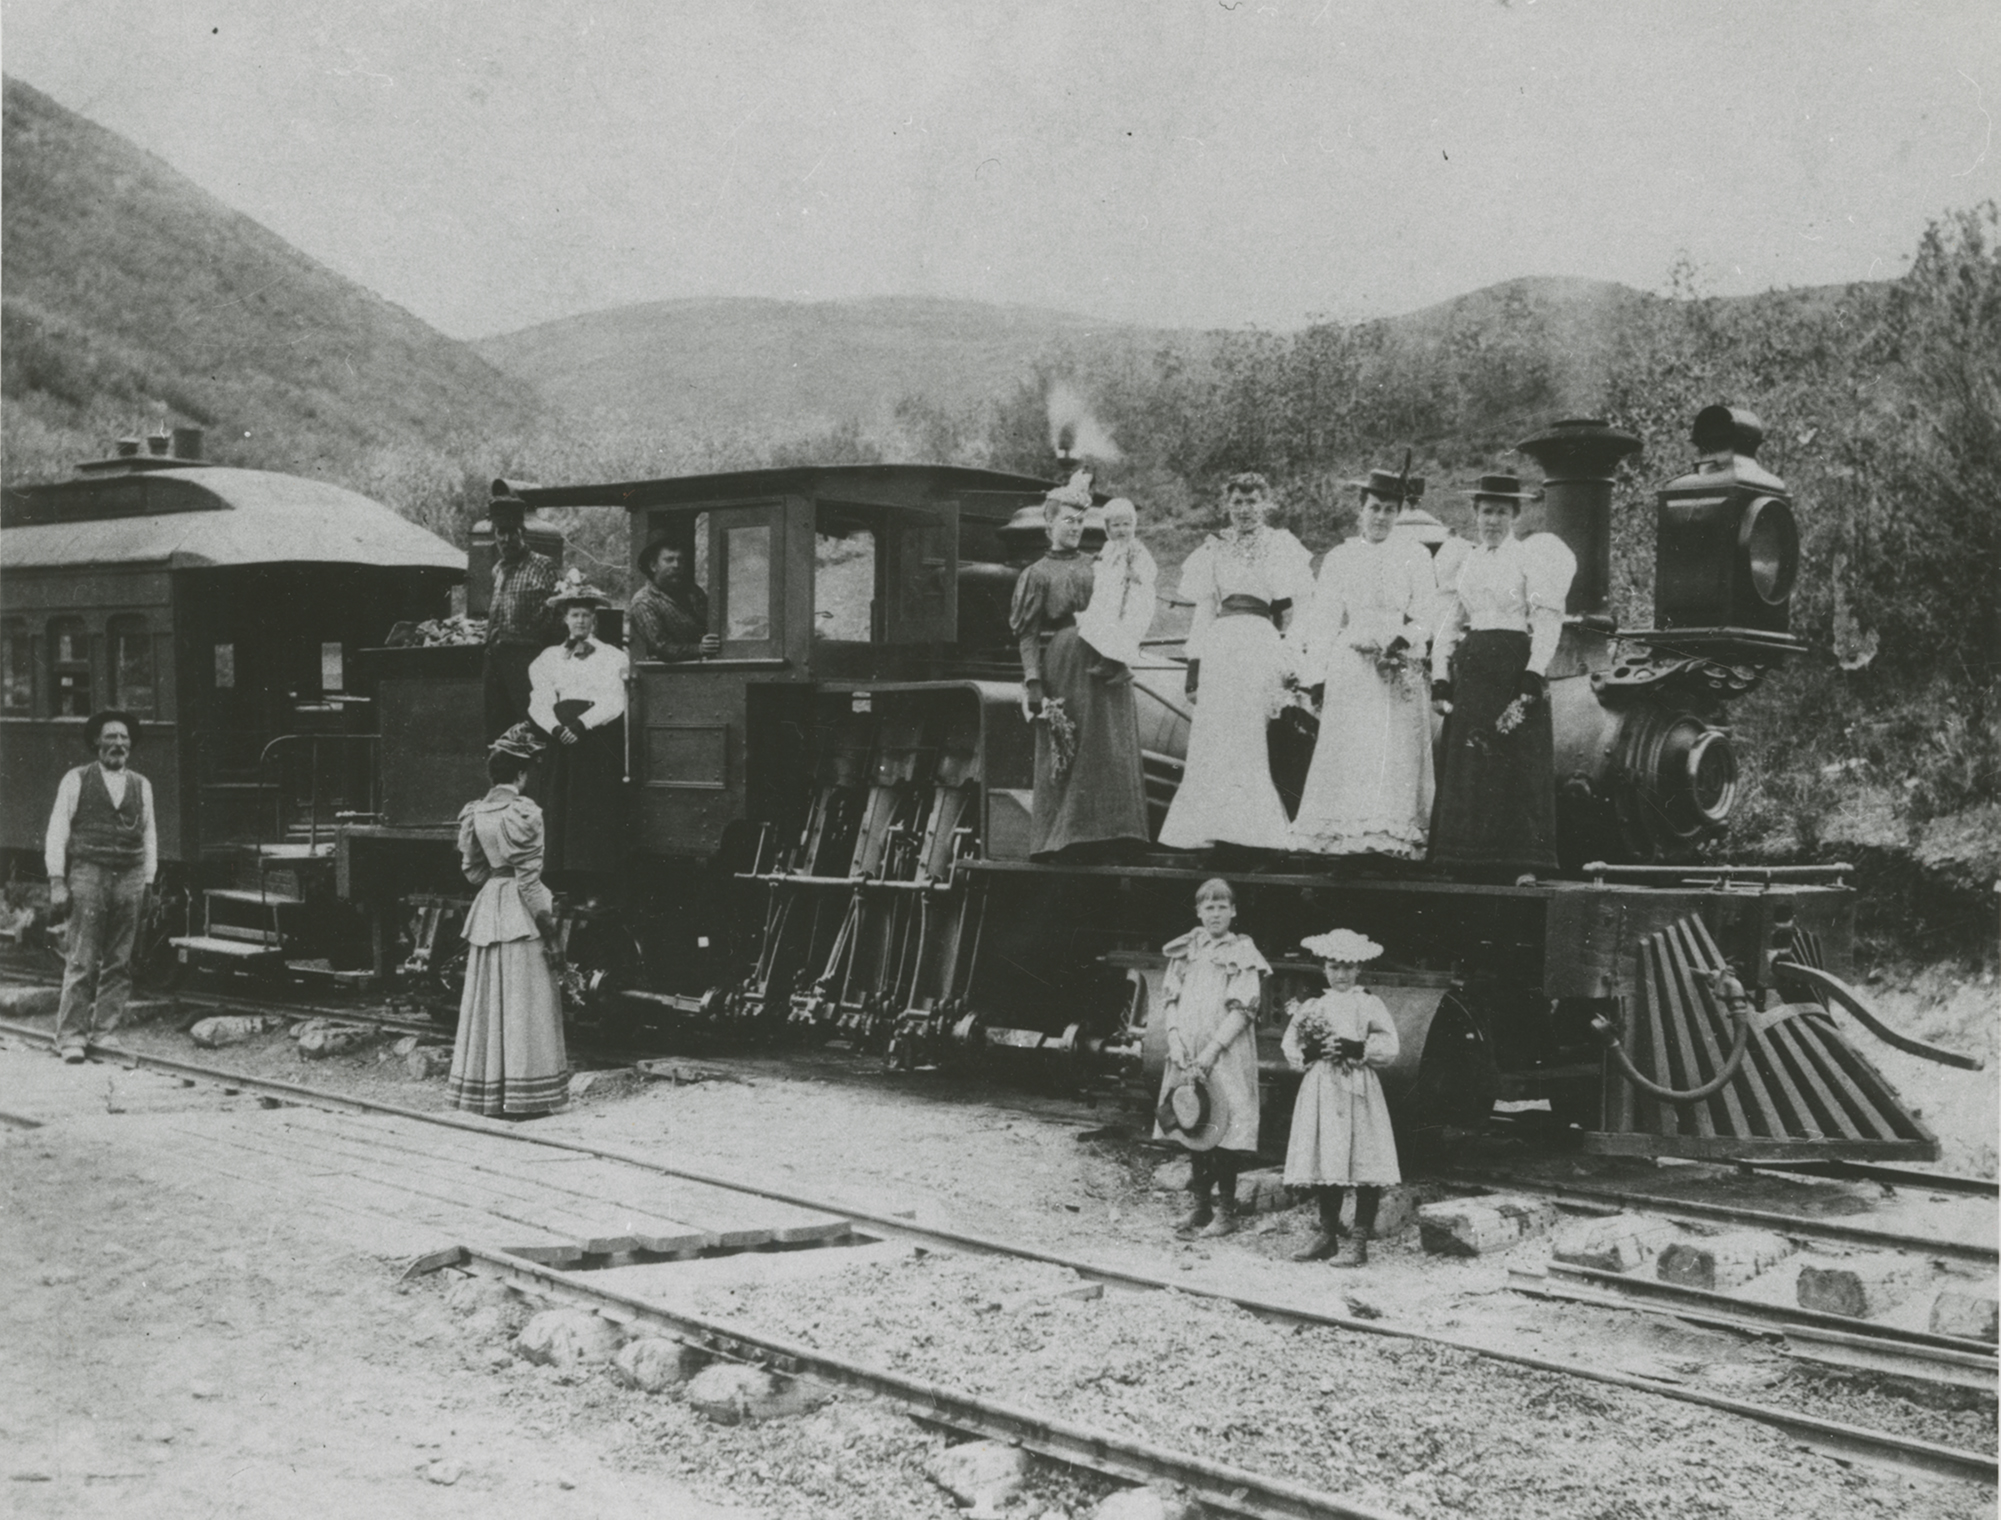 A historical photo of several women and children near a train.